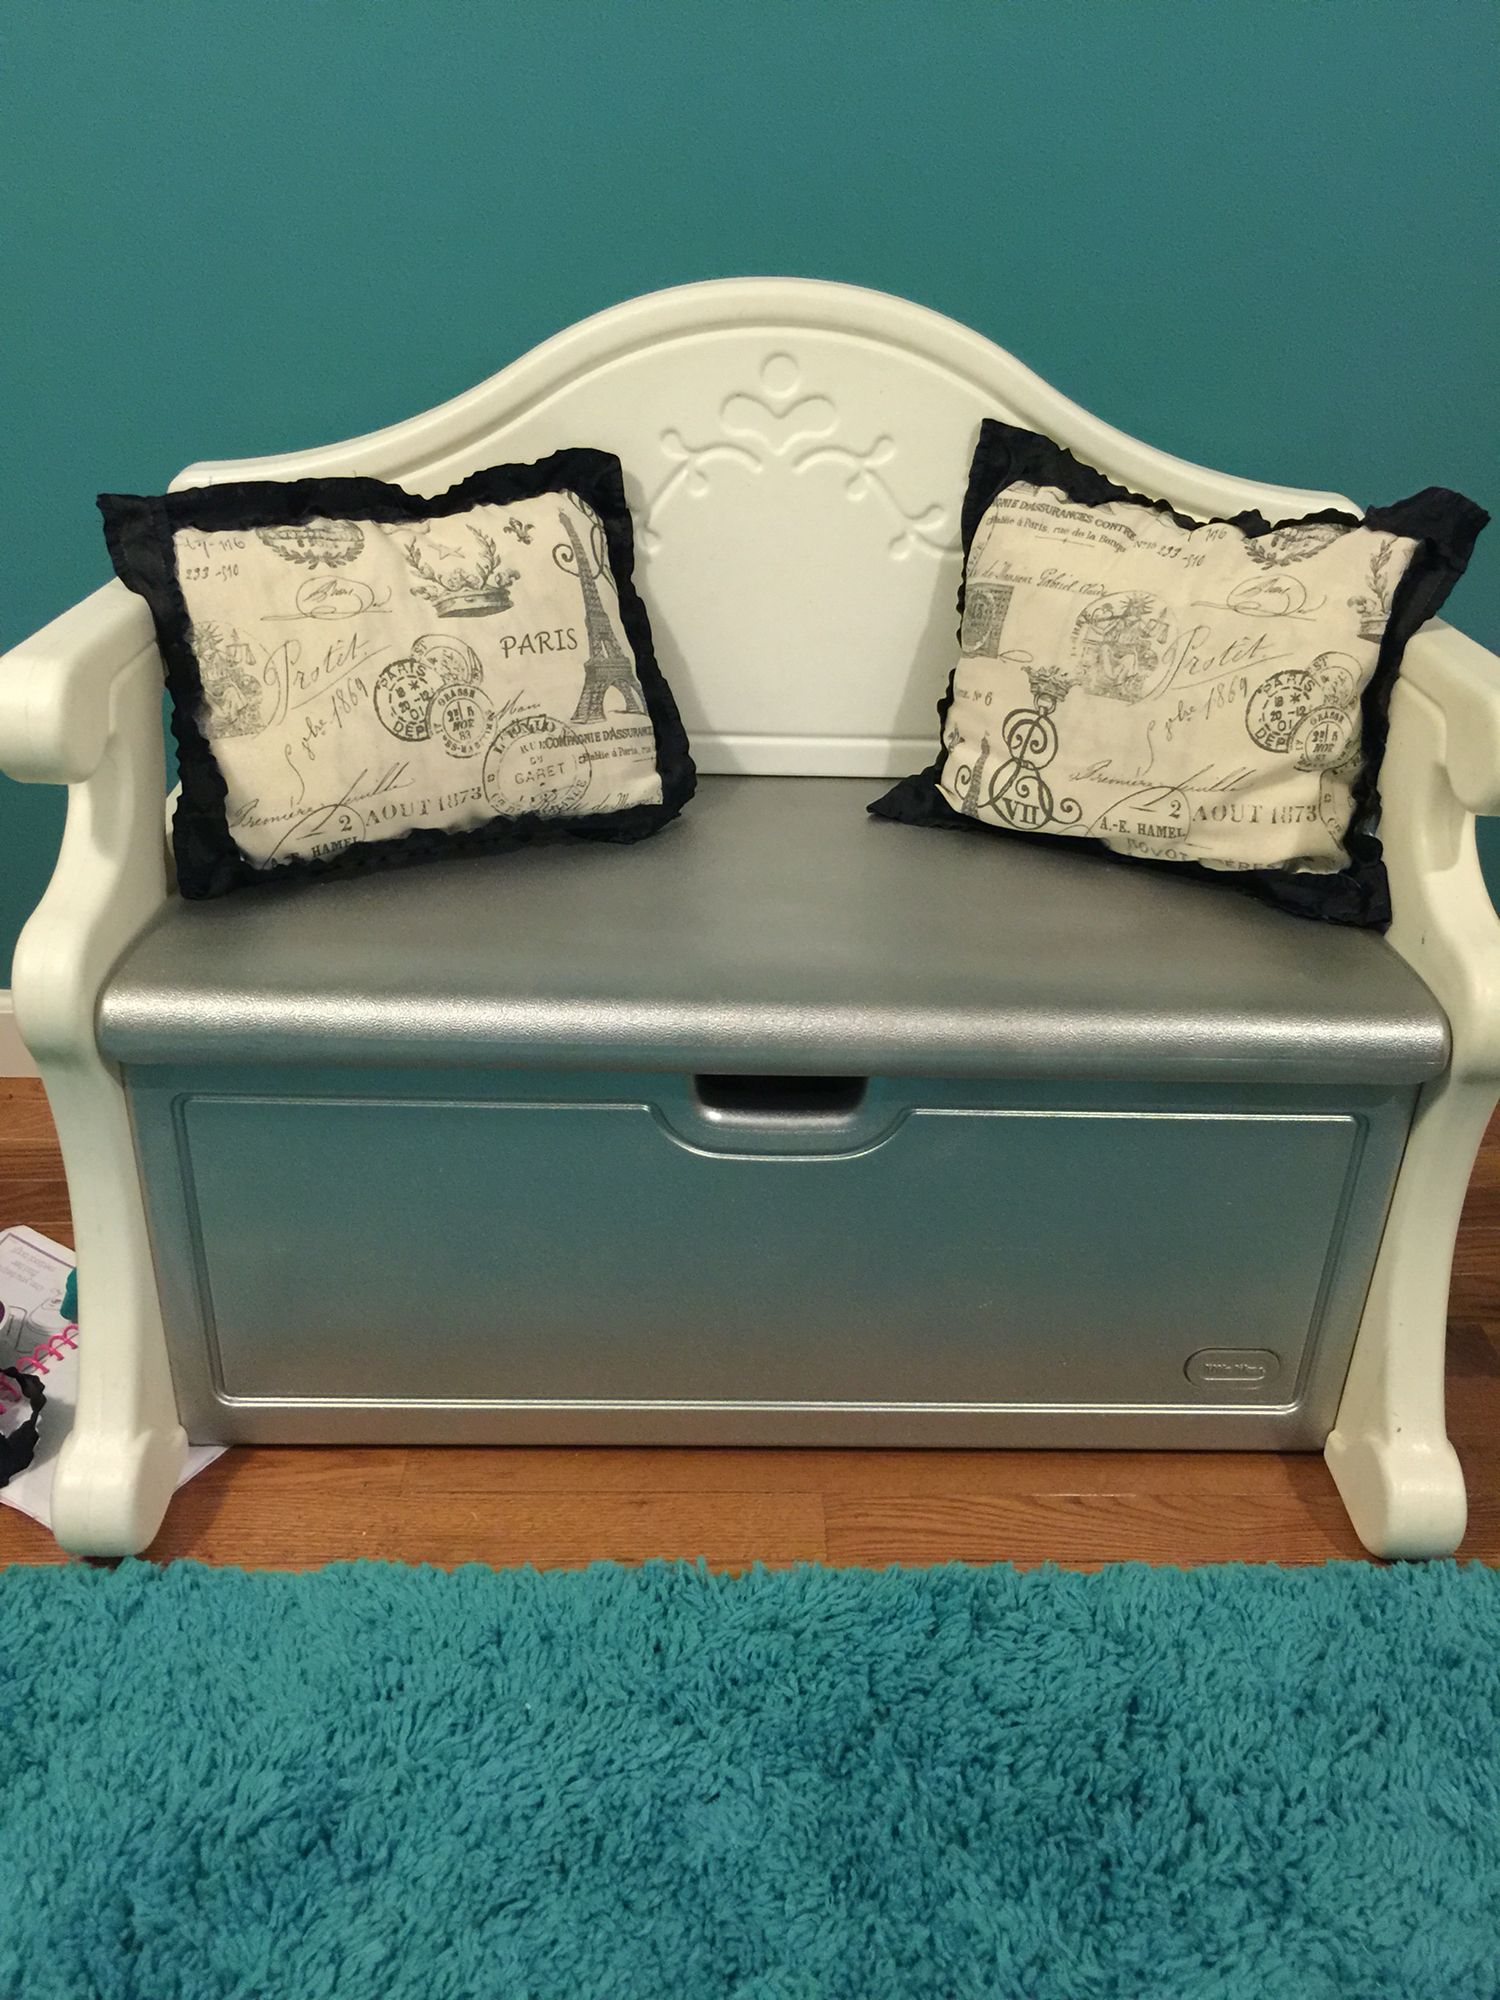 Little Tikes Bedroom Furniture Little Tikes Bench Makeover I Painted The Pink Parts Silver To Go